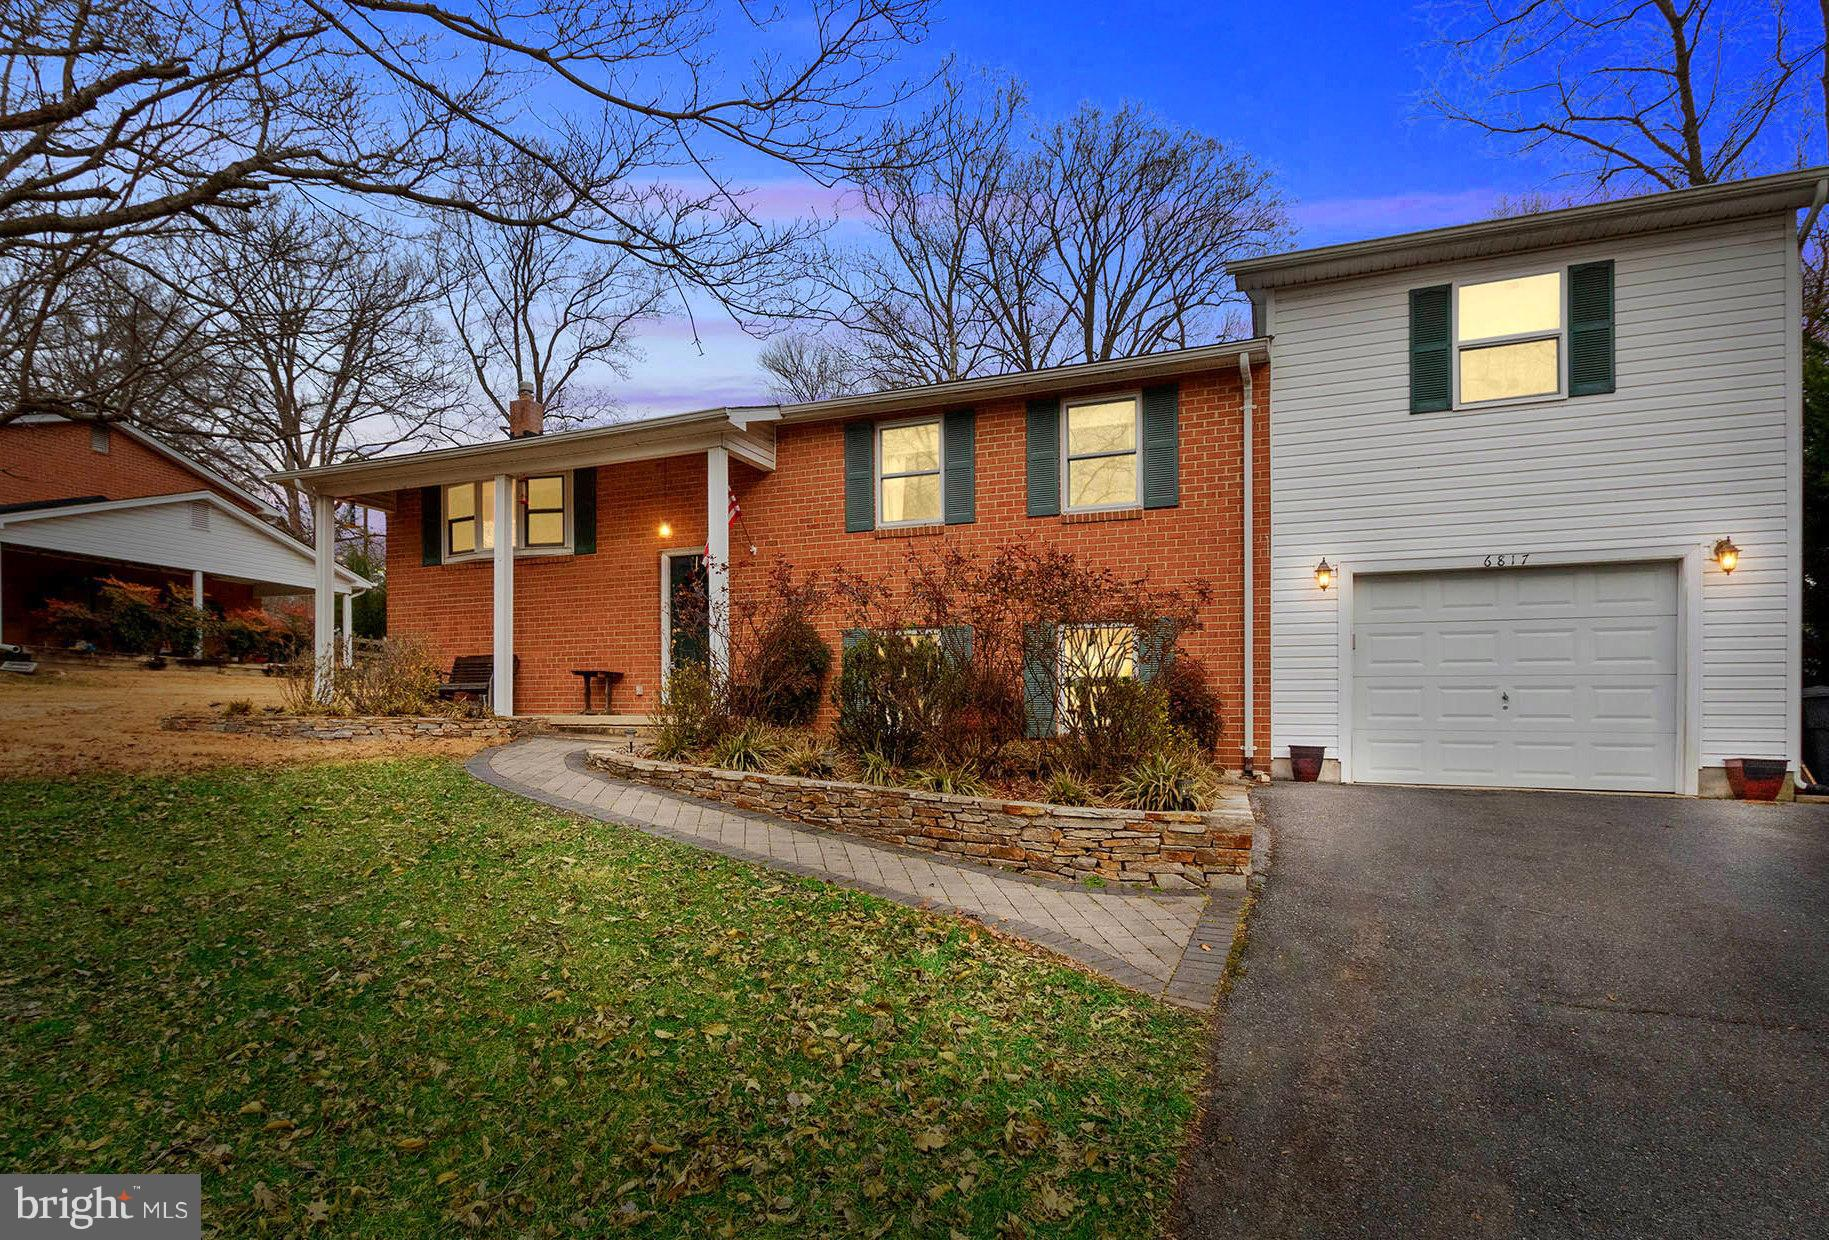 6817 ALLVIEW DRIVE, COLUMBIA, MD 21046